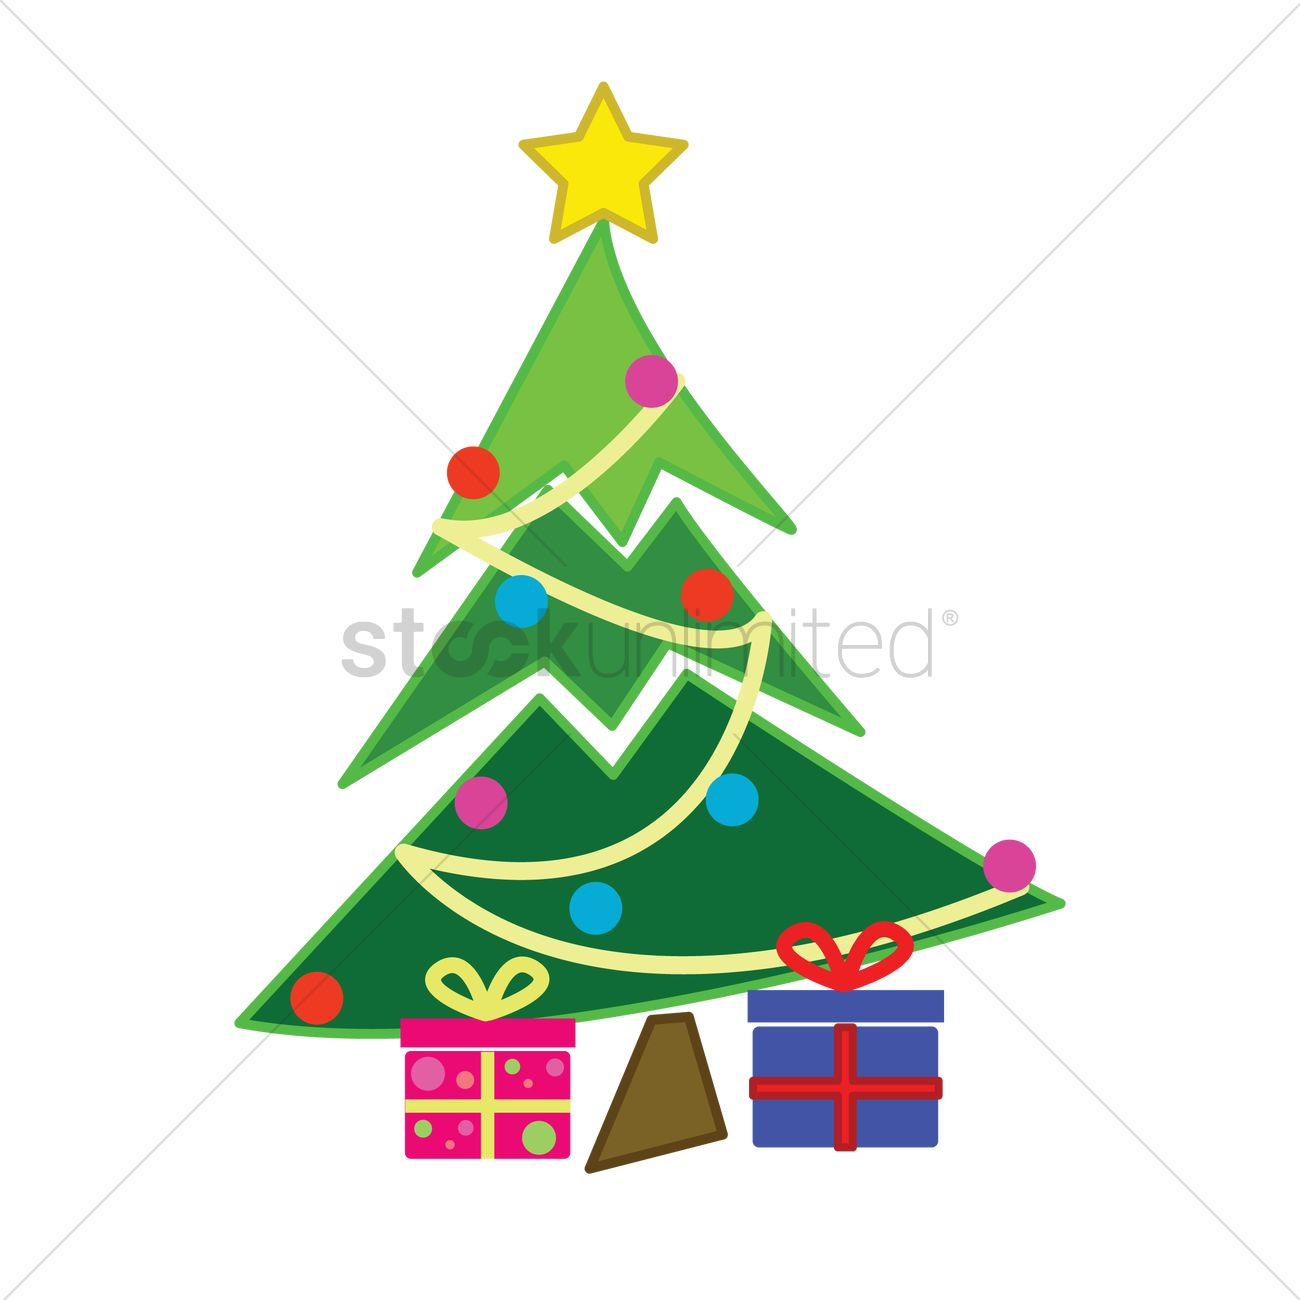 Christmas Trees Background Clipart.Decorated Christmas Tree On White Background Vector Image